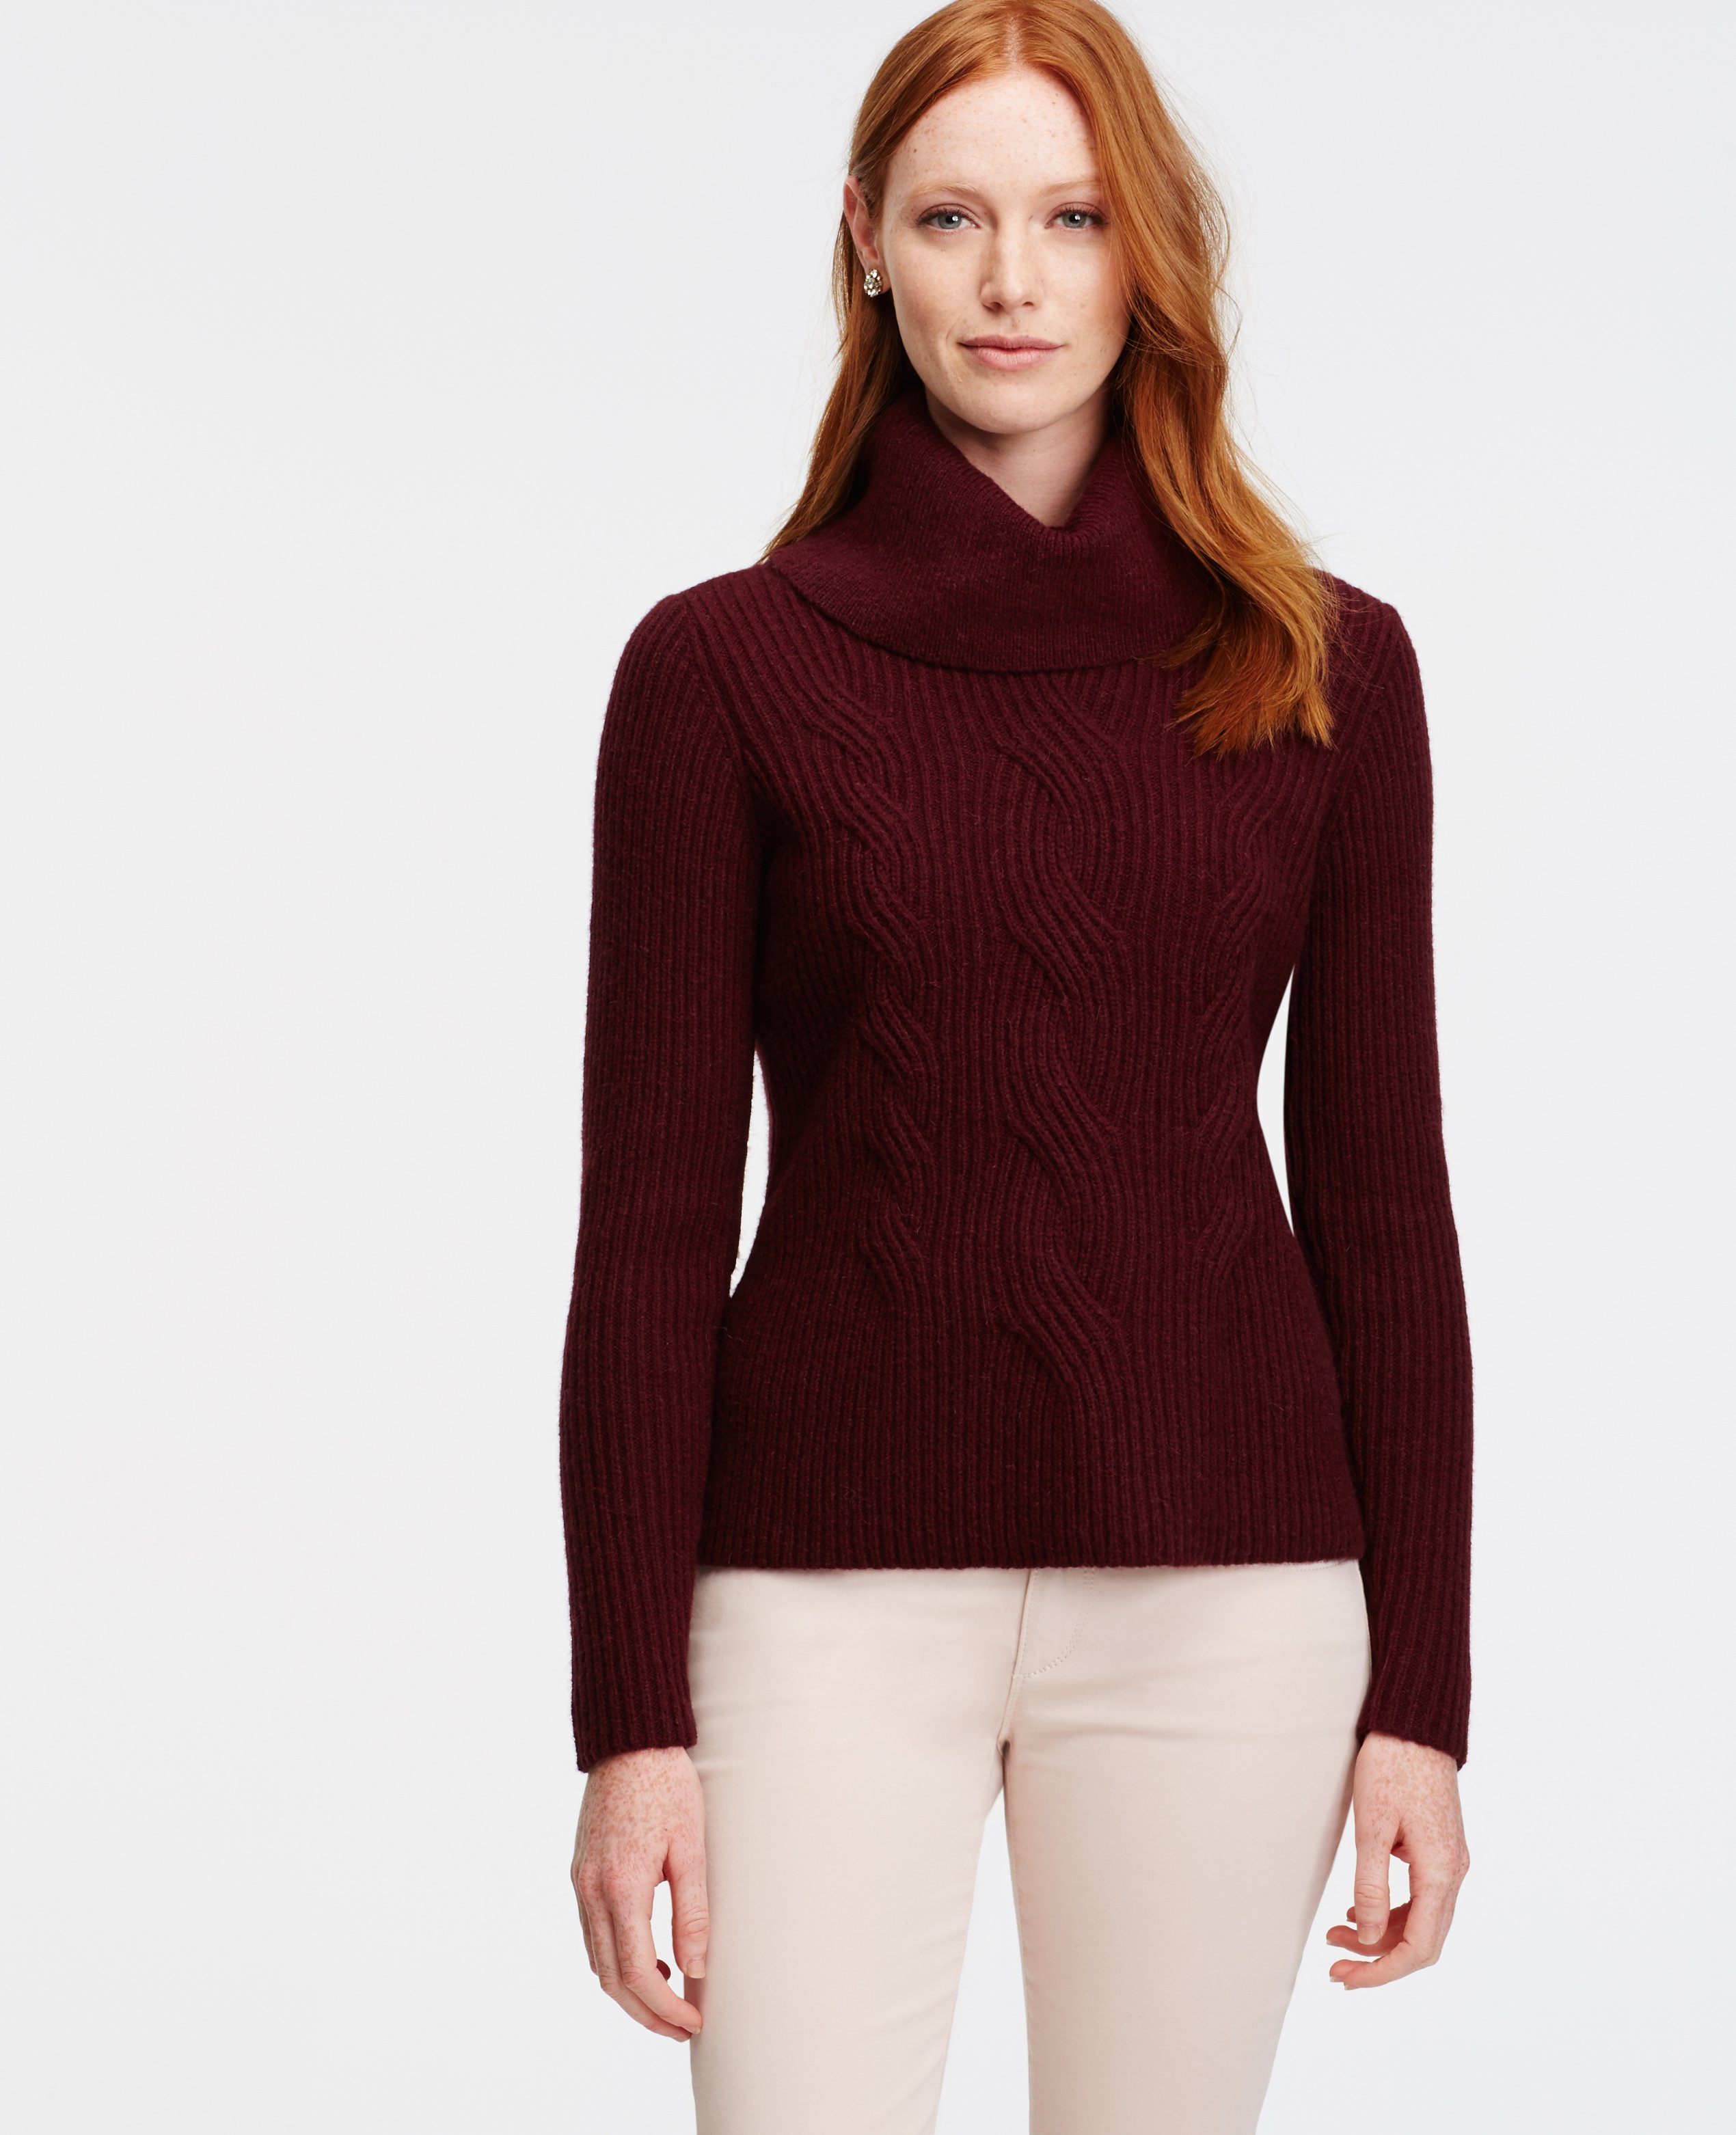 Ann taylor Petite Cowl Neck Cable Sweater in Purple | Lyst